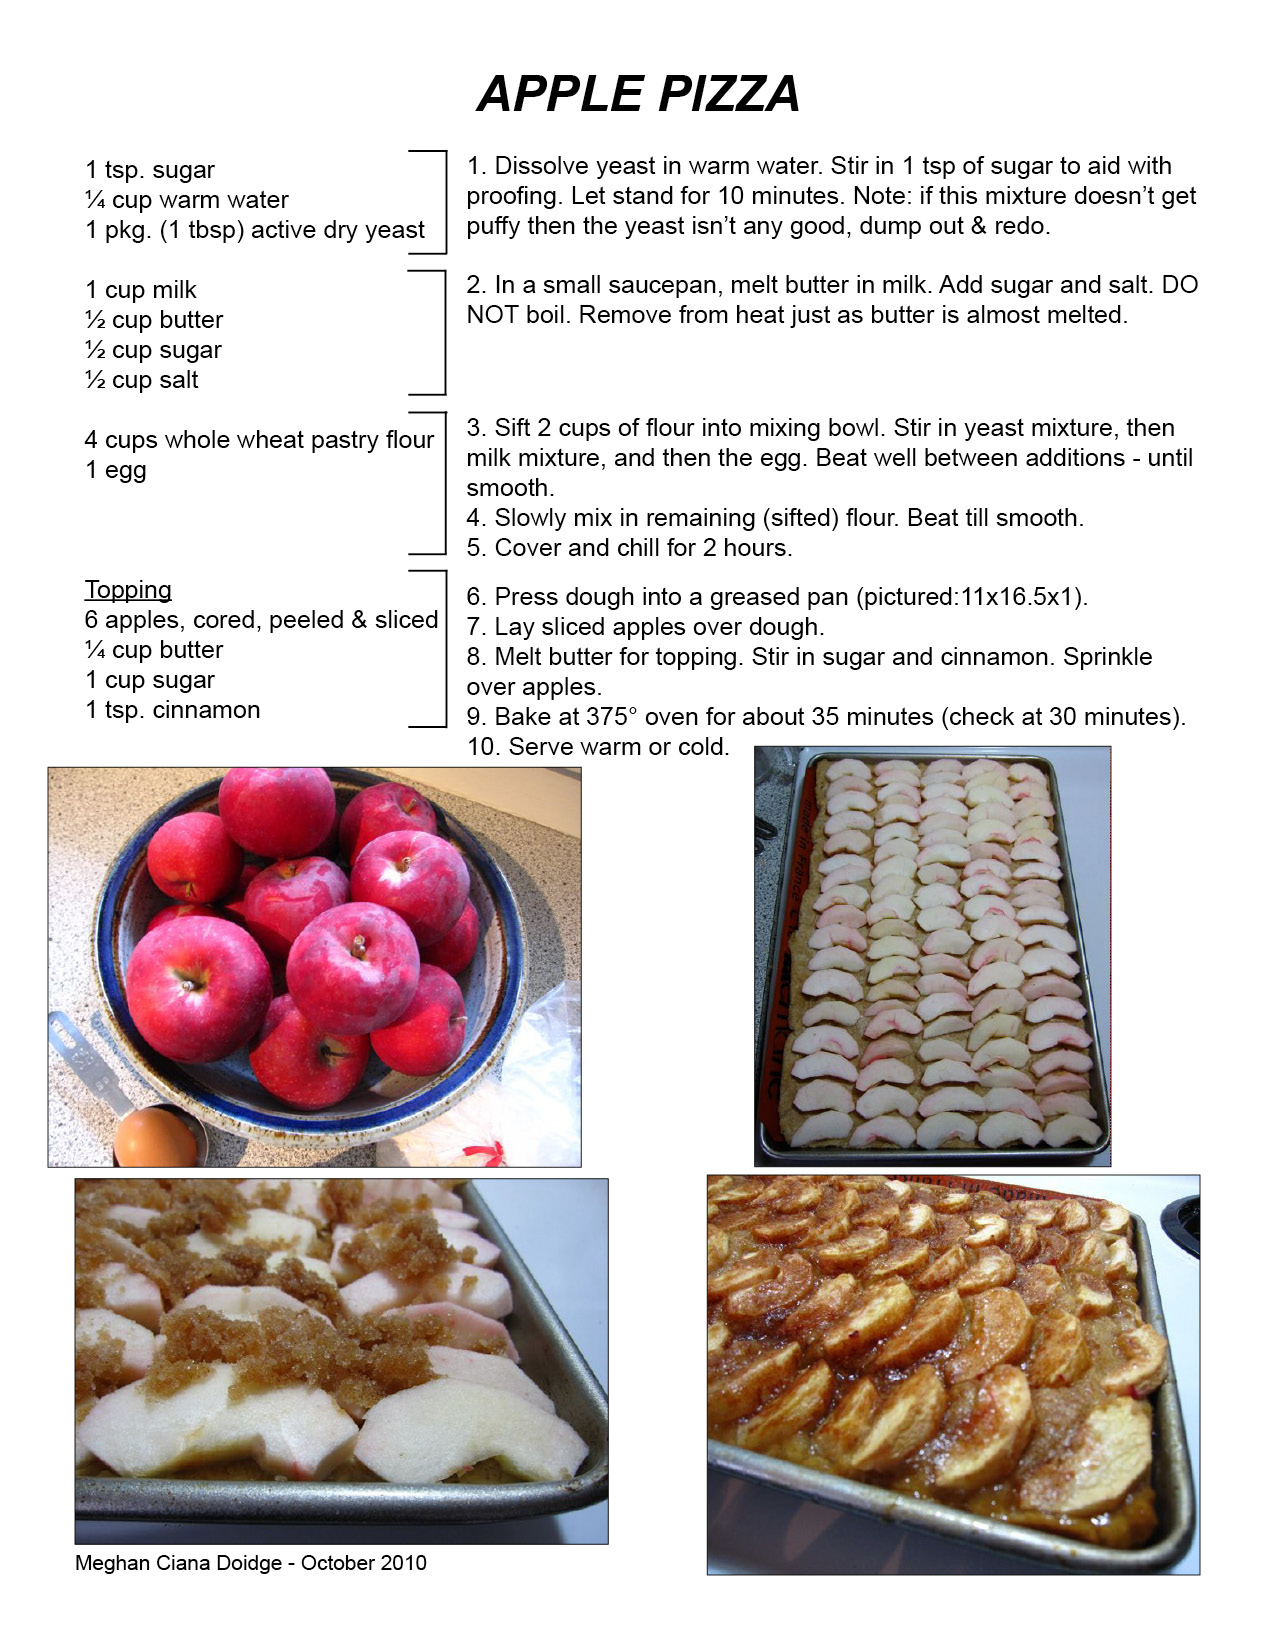 Apple Kuchen AKA Apple Pizza | Made by Meghan